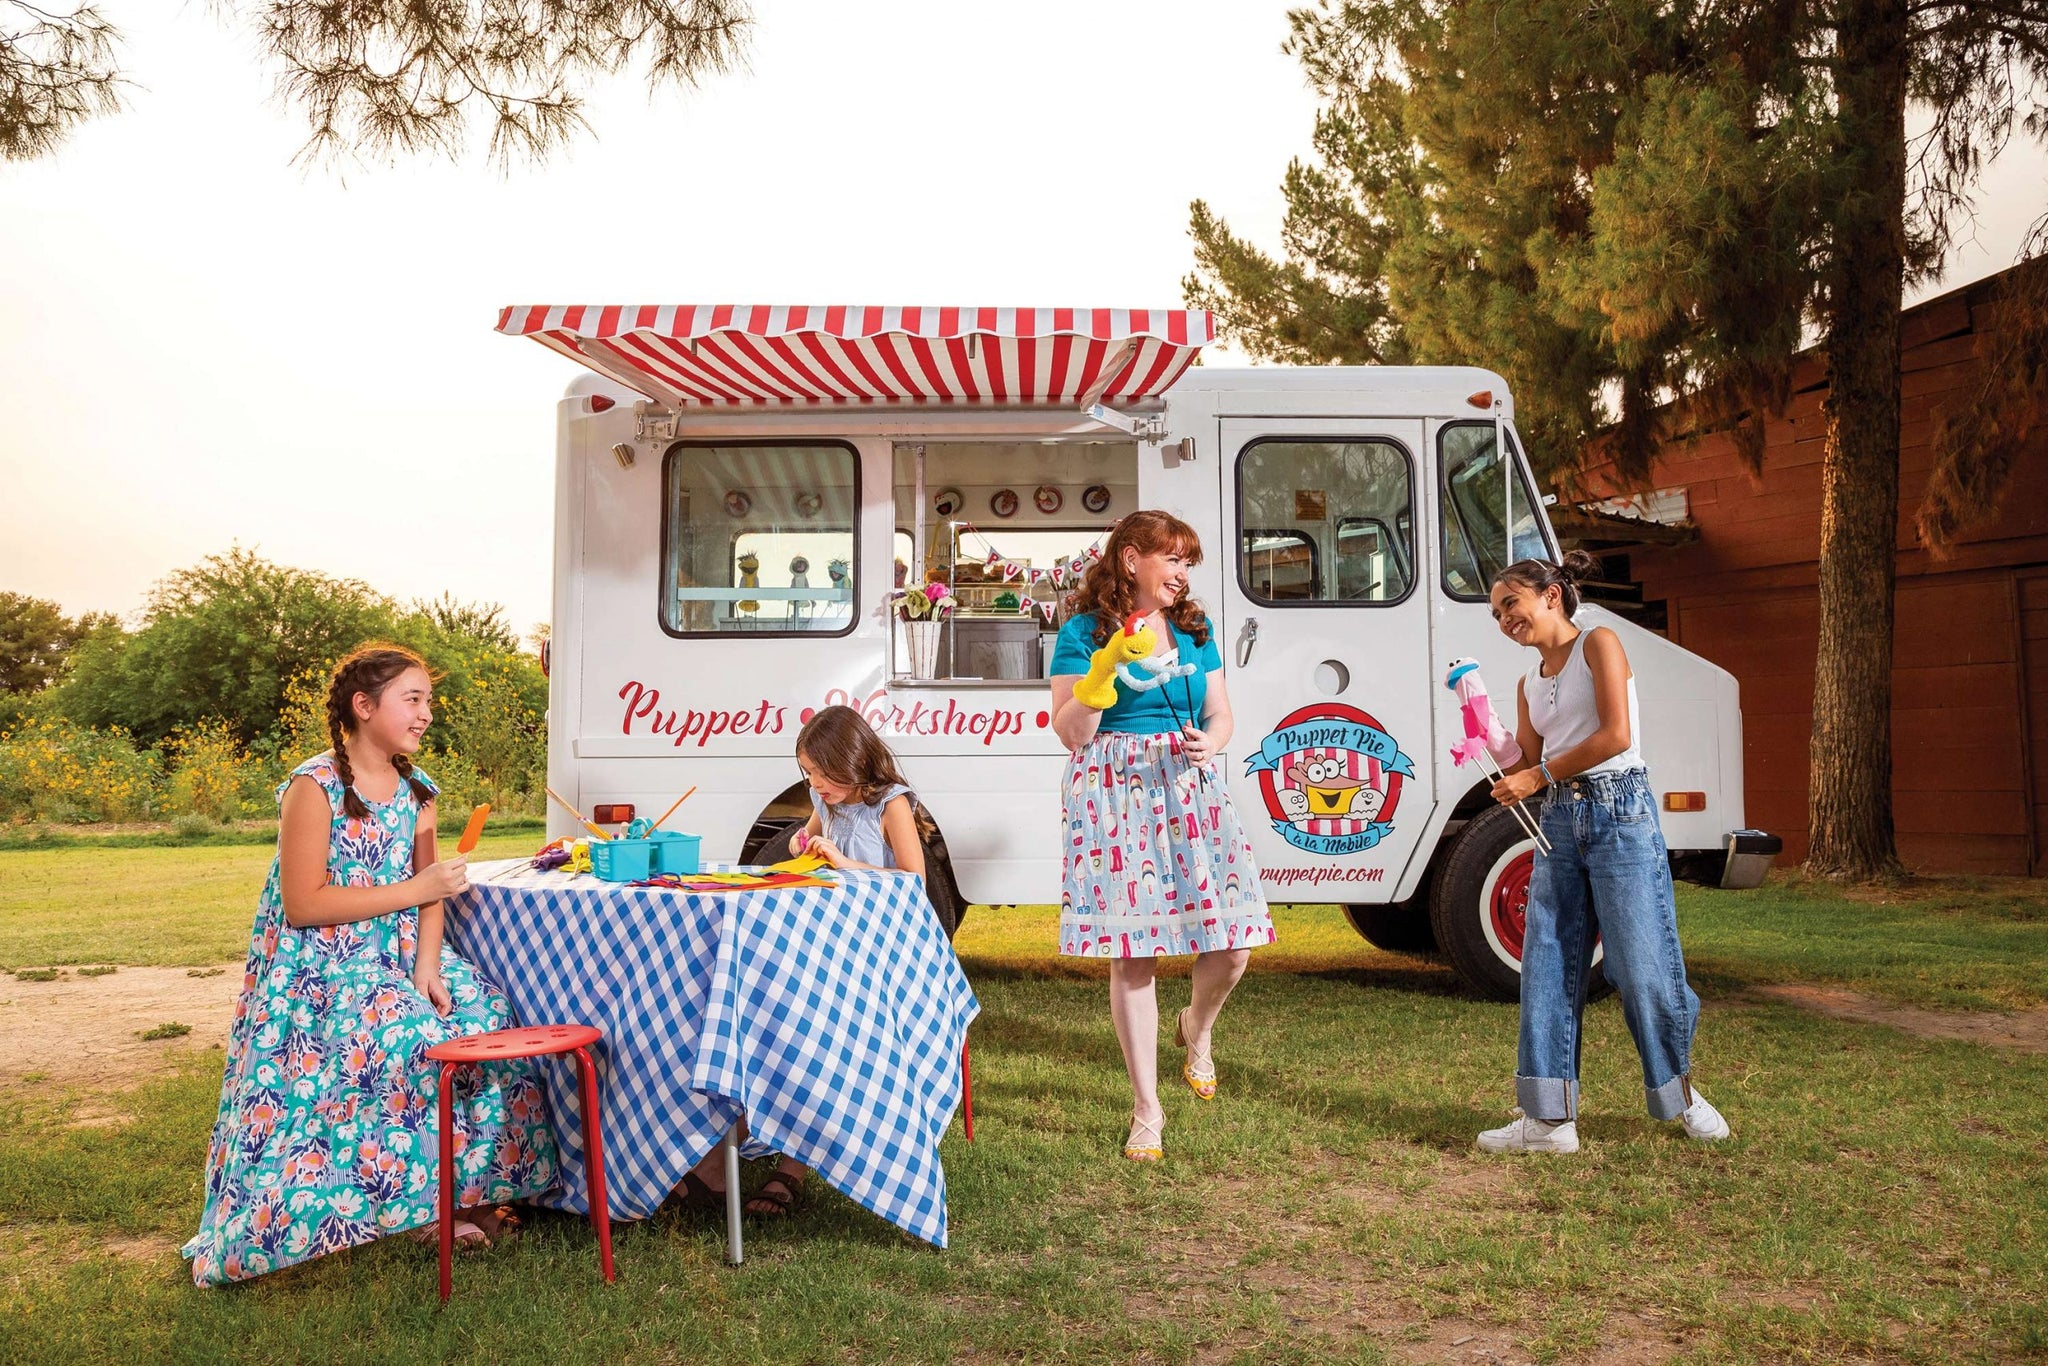 Stacey Gordon and 3 girls are in front of the puppet pie ice cream truck. The truck is white with a red awning. Two girls are sitting to the left at a table. One of them is eating an orange popsicle, the other is making a puppet. Stacey and another girl are standing to the right of the photo and laughing at a joke the girl just told with her puppet.